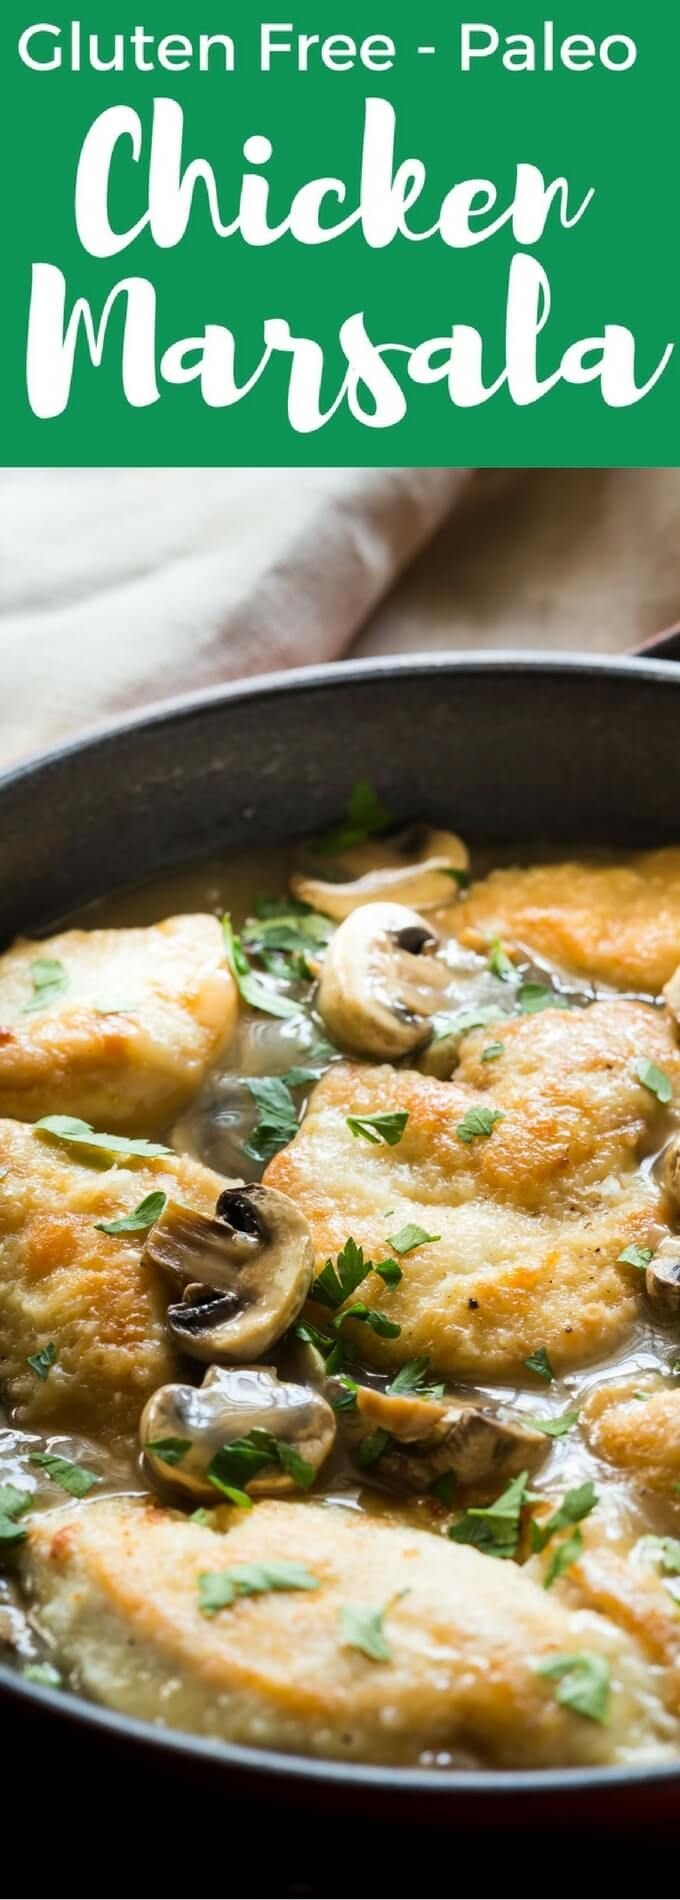 30 Minute Gluten Free Chicken Marsala recipe, made in one pan! You can make it Paleo too, nice served with pasta or mashed potato, Make it TODAY!